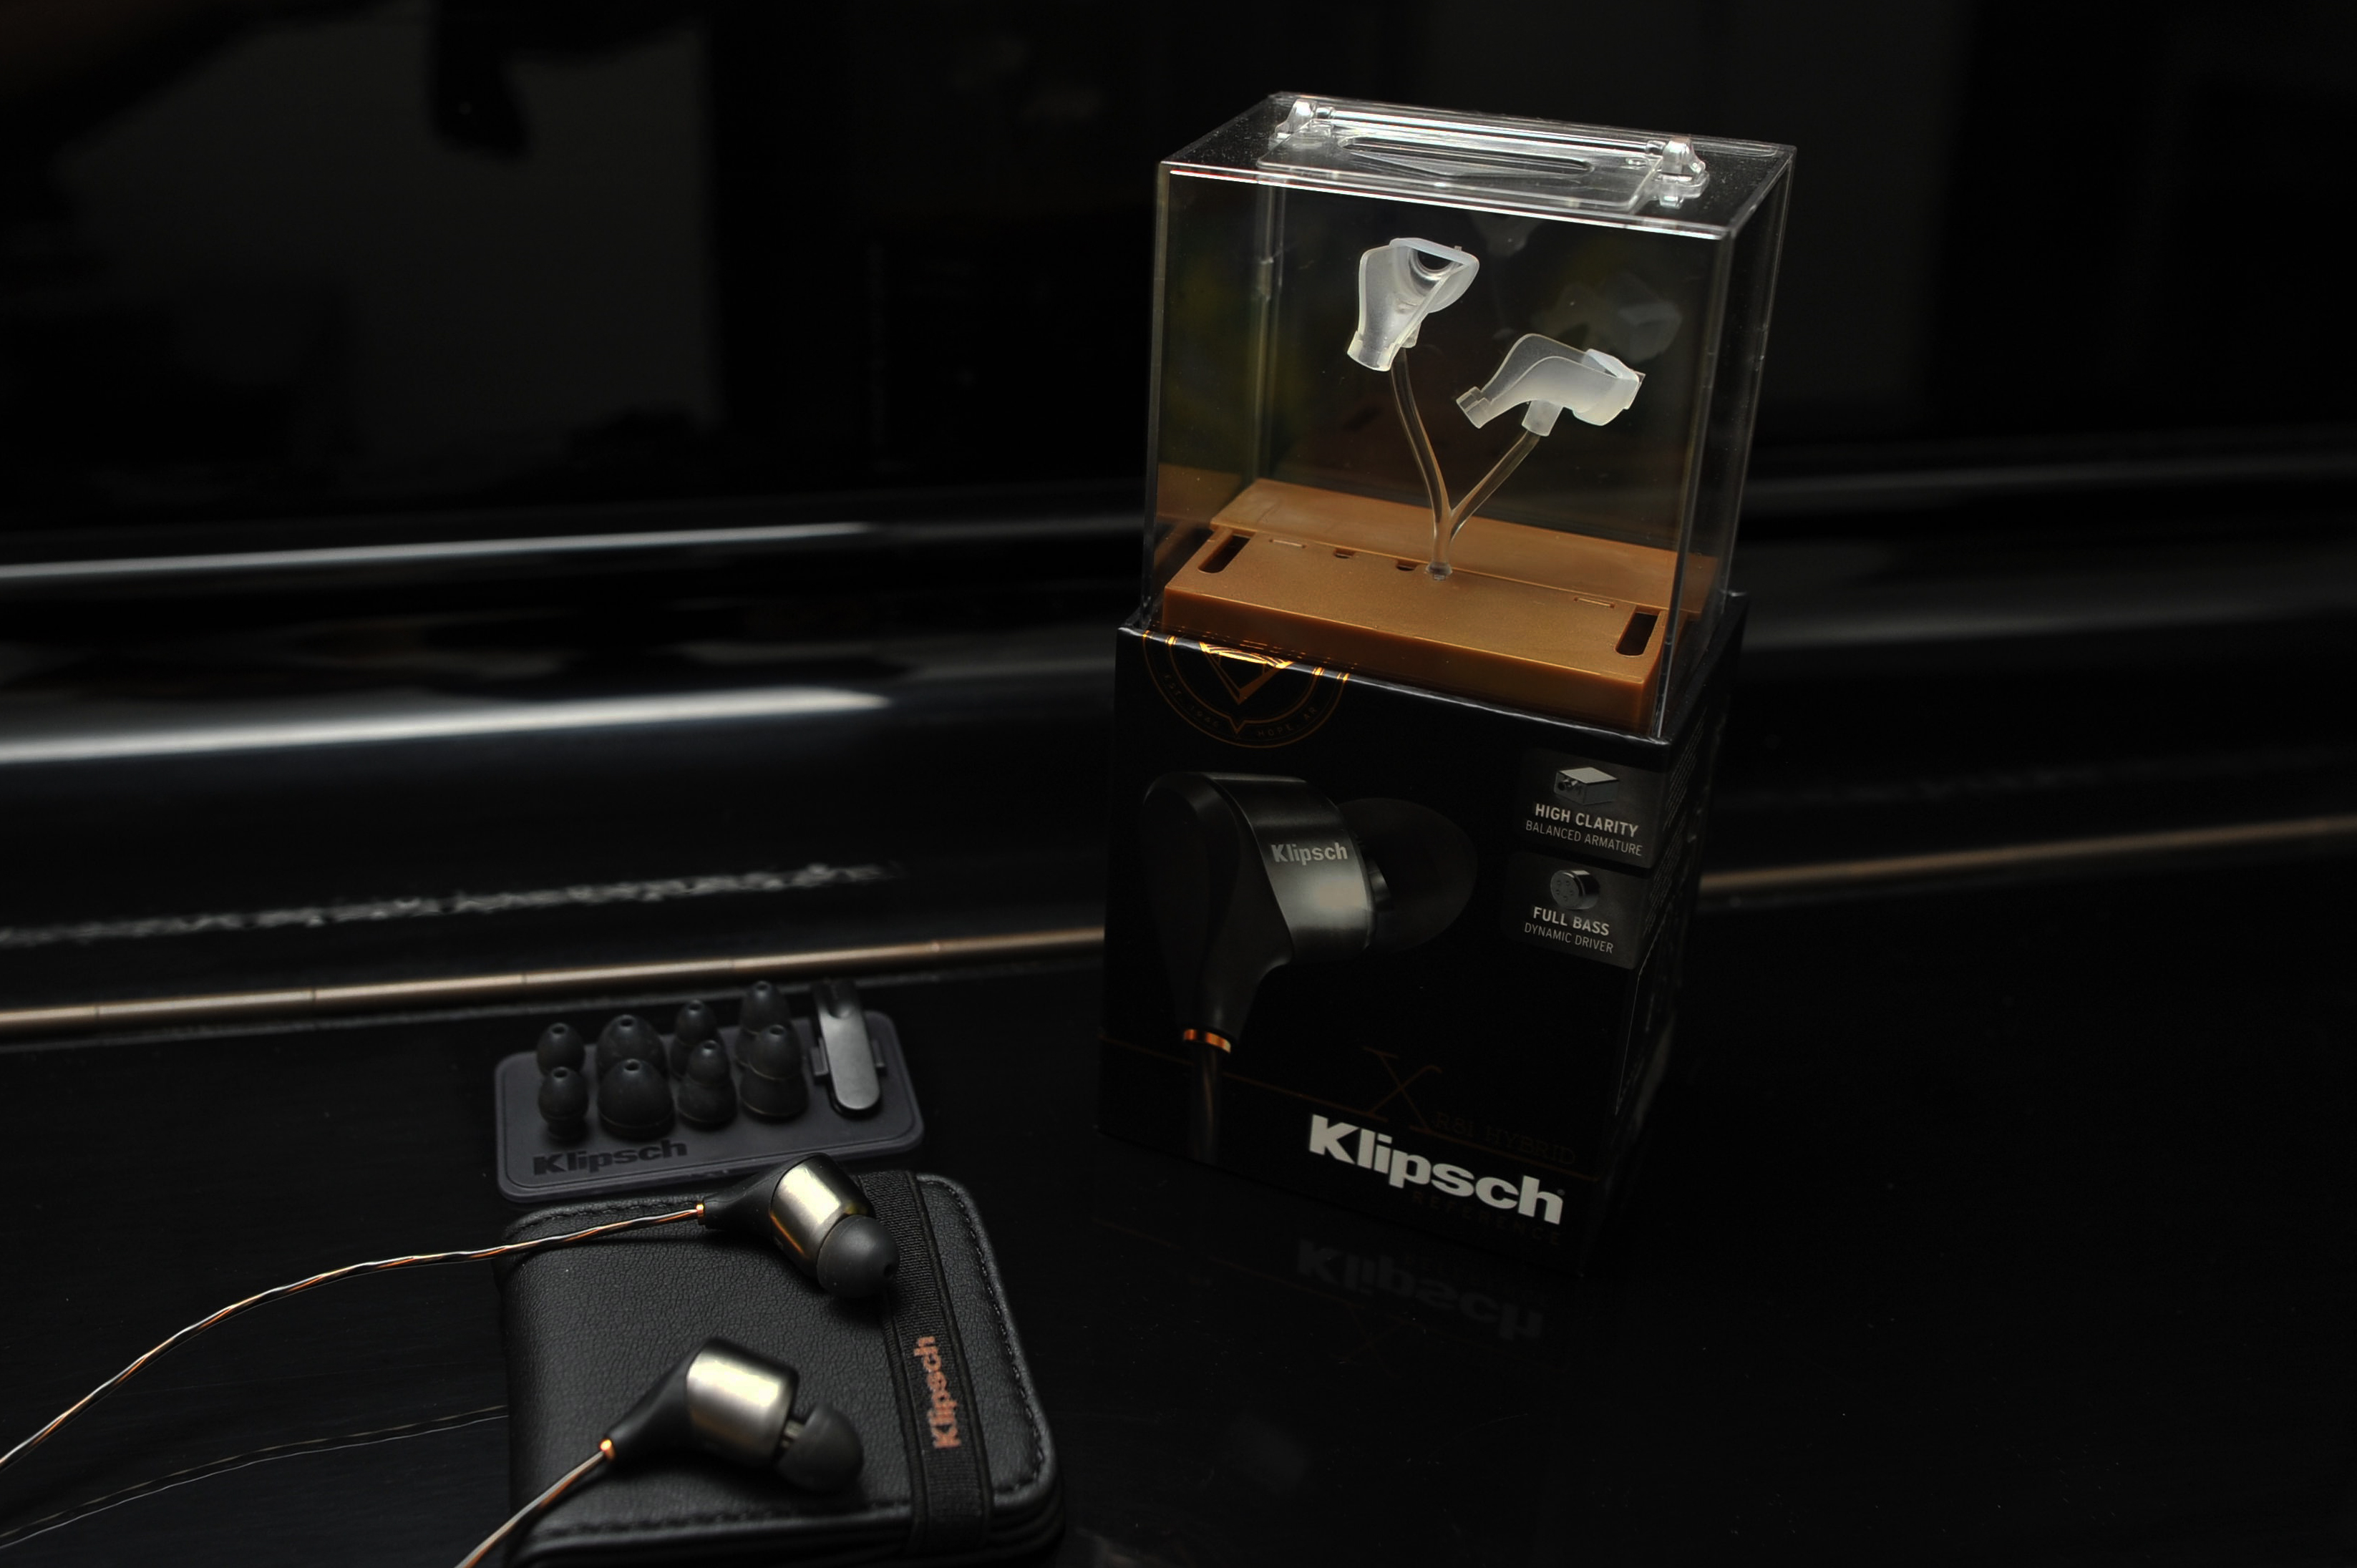 PMReviews] Klipsch XR8i | Headphone Reviews and Discussion